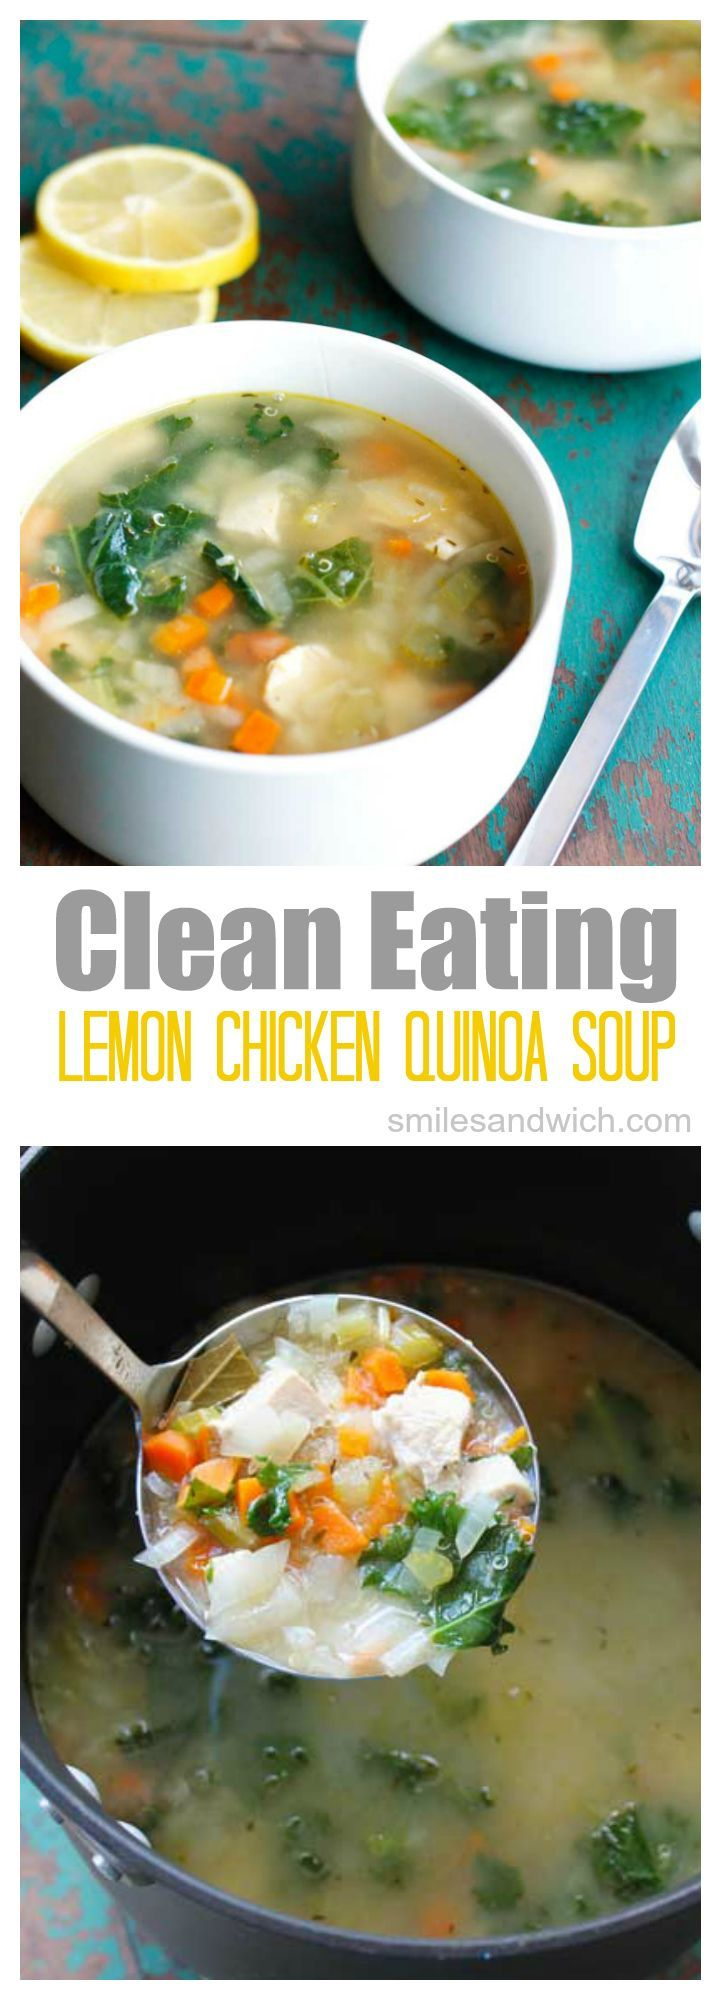 Clean Eating Lemon Chicken Quinoa Soup - this delicious and healthy soup recipe is paleo-approved with such great flavor!